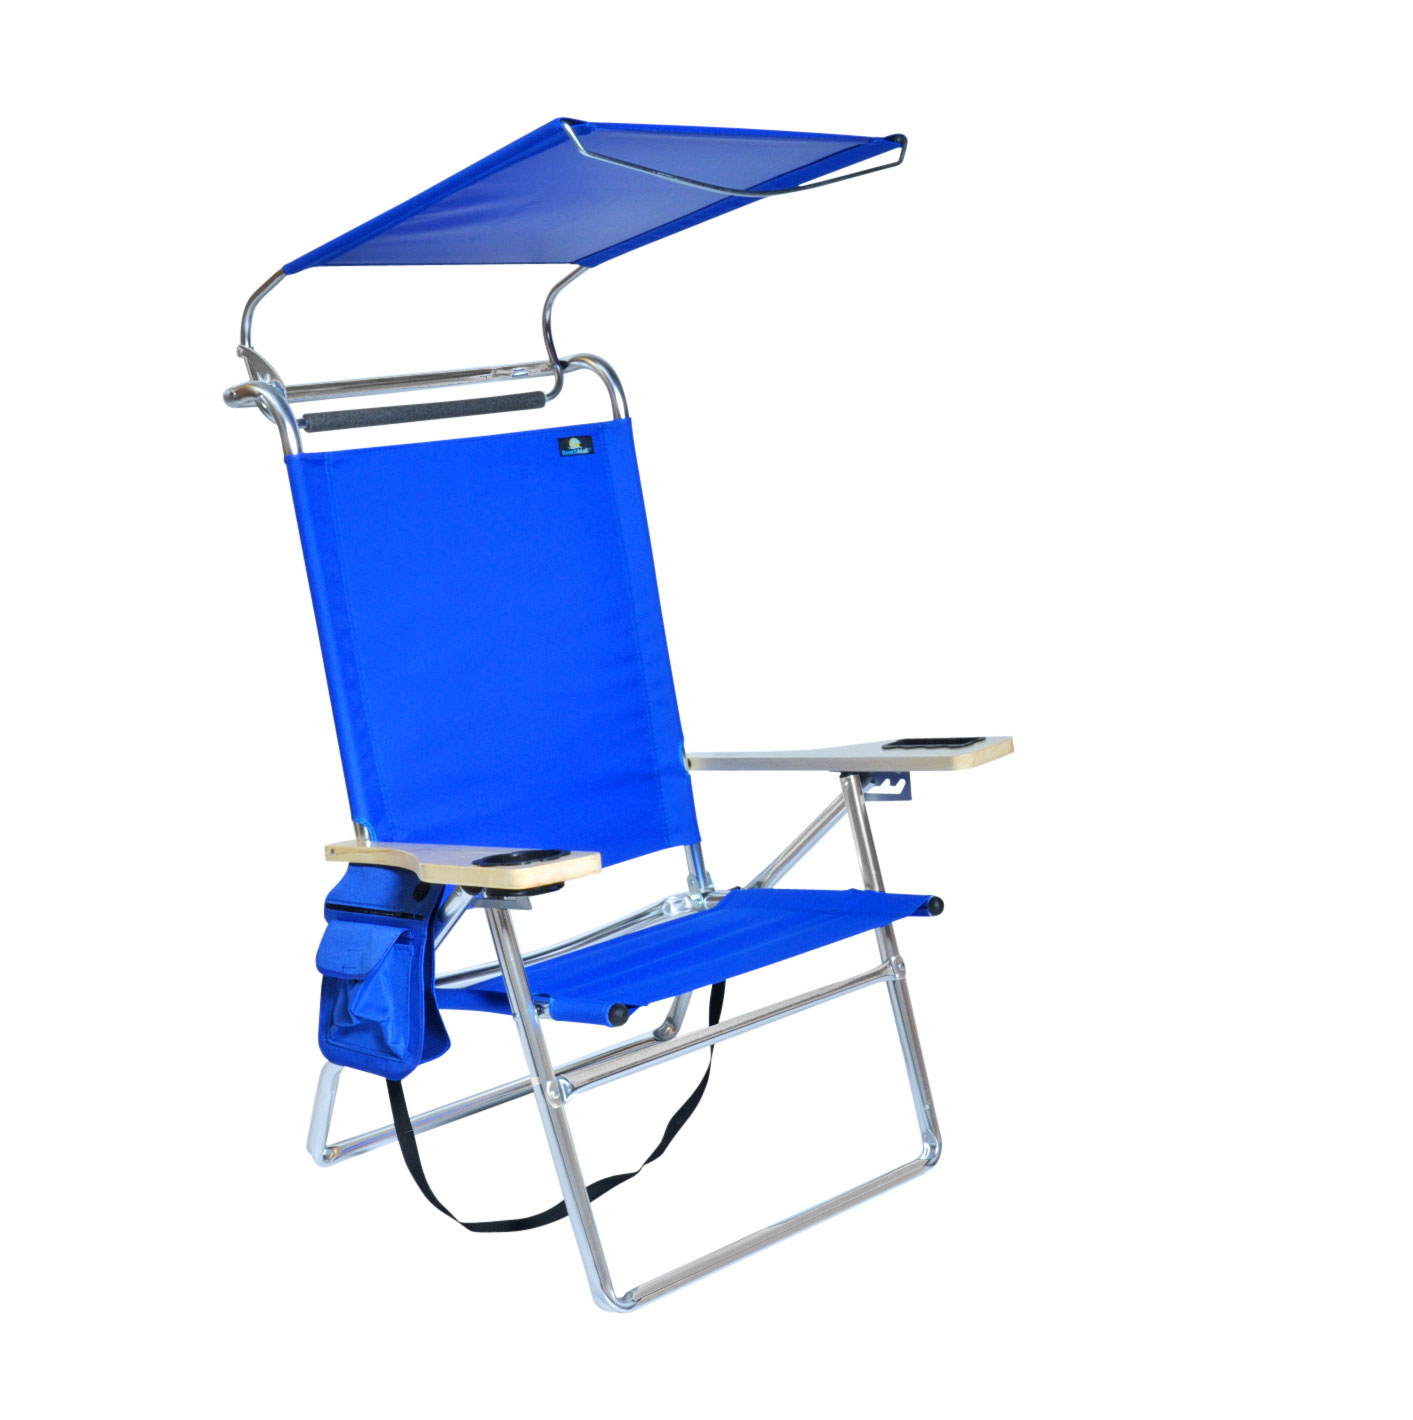 Deluxe 4 Position Aluminum Beach Chair W Canopy Amp Storage